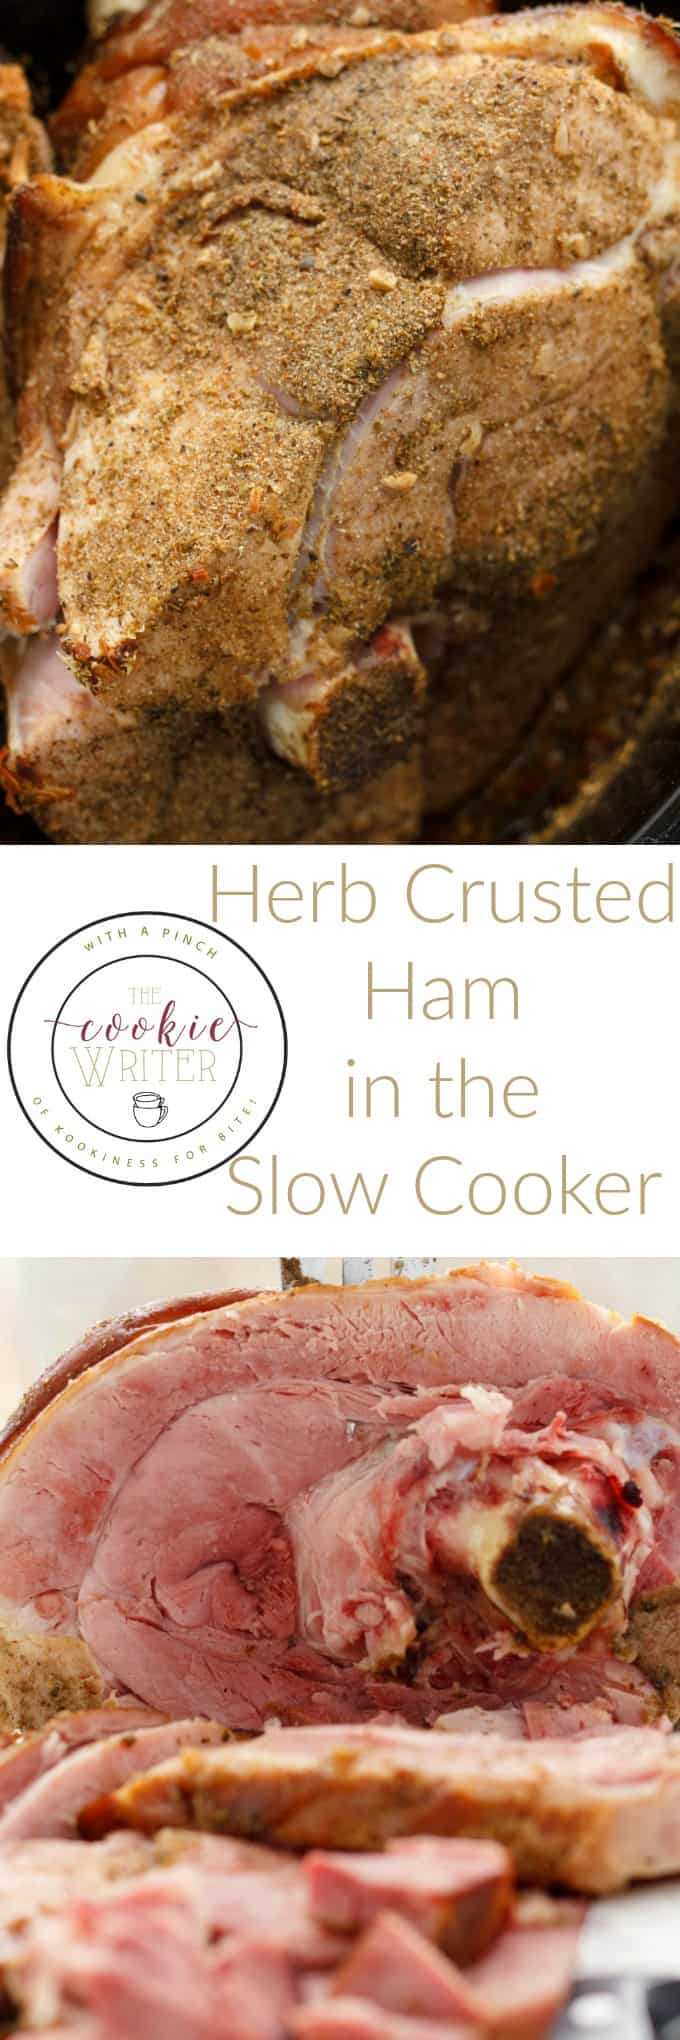 Herb Crusted Ham in the Slow Cooker #slowcooker